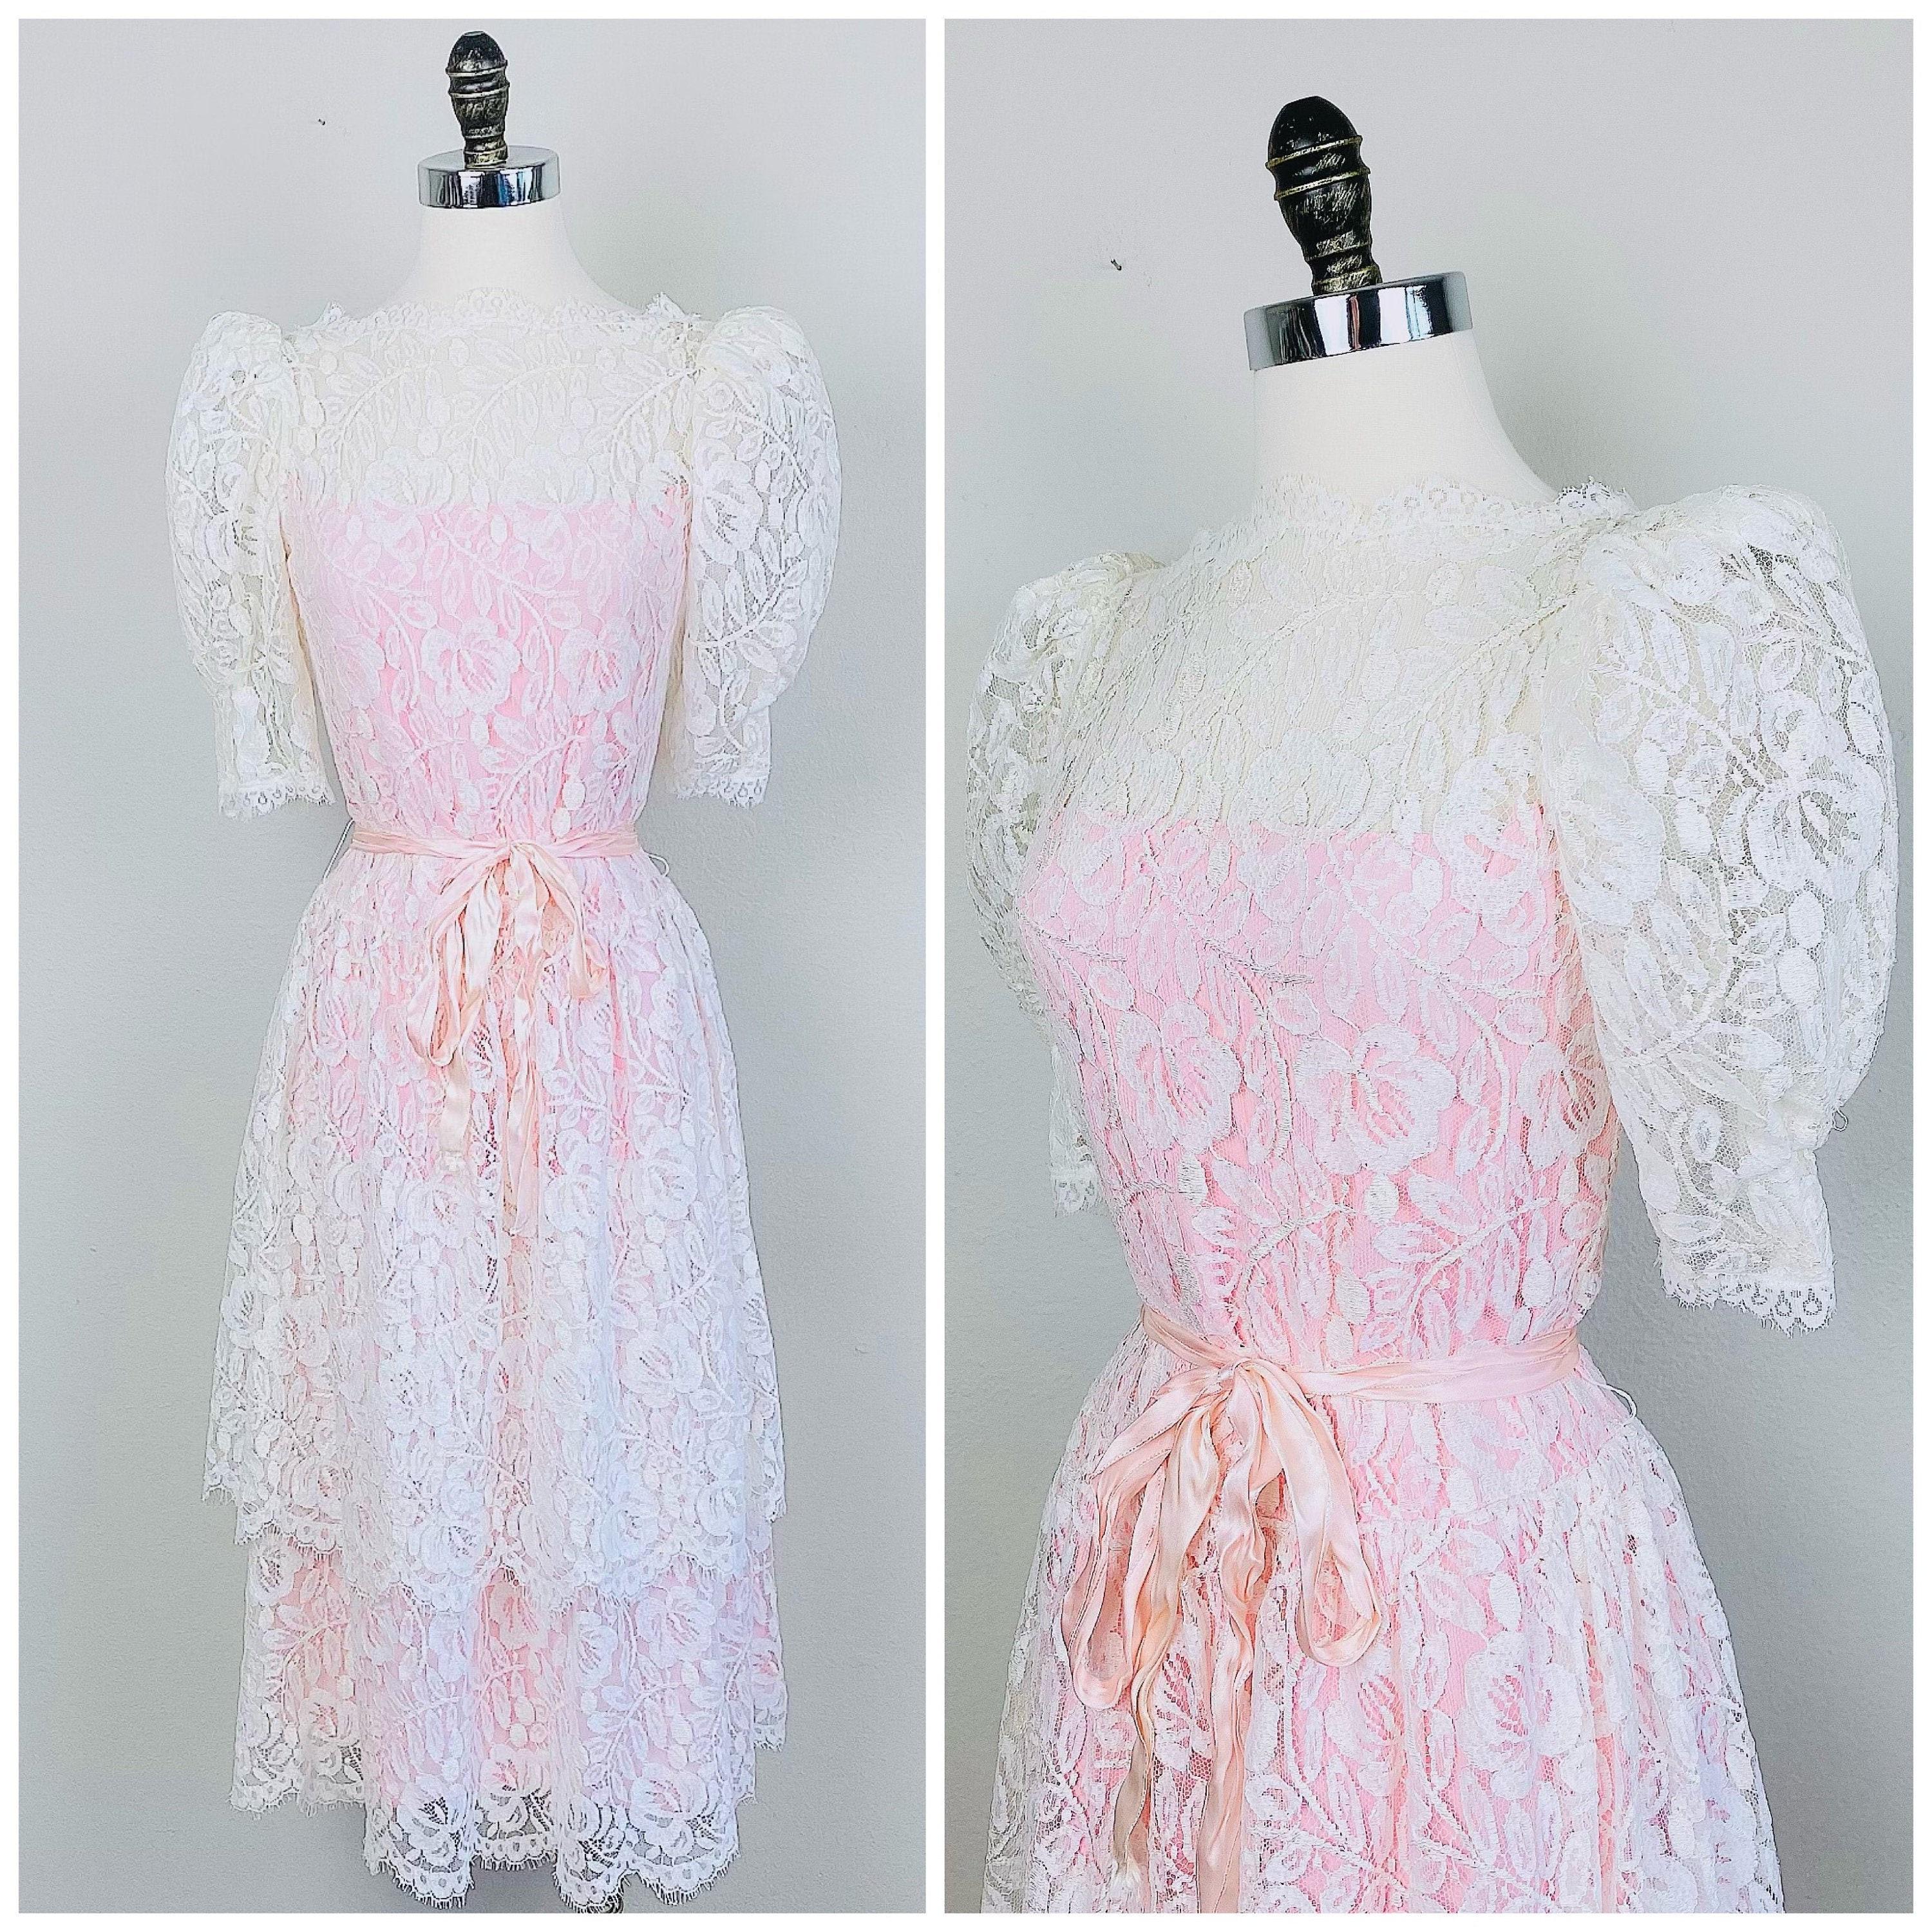 80s Dresses | Casual to Party Dresses 1980S Vintage Cream  Lace Pink Party Dress80S Eighties Puffed Sleeve Tiered Skirt Size Small Medium $26.50 AT vintagedancer.com